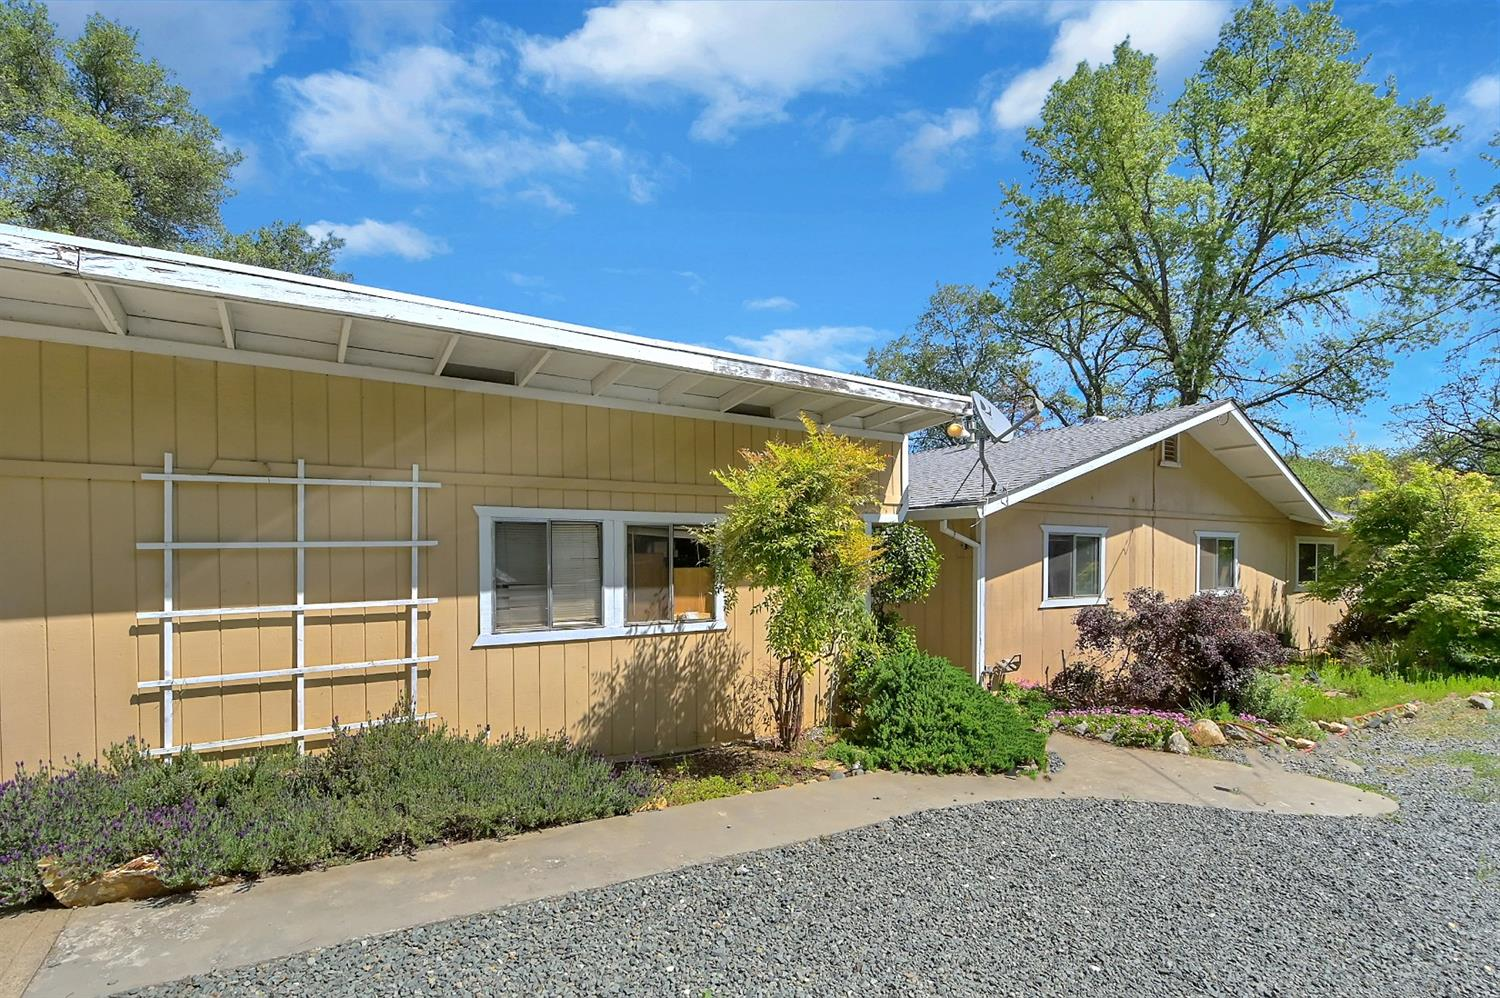 Photo of 10030 Carriage Road, Grass Valley, CA 95949